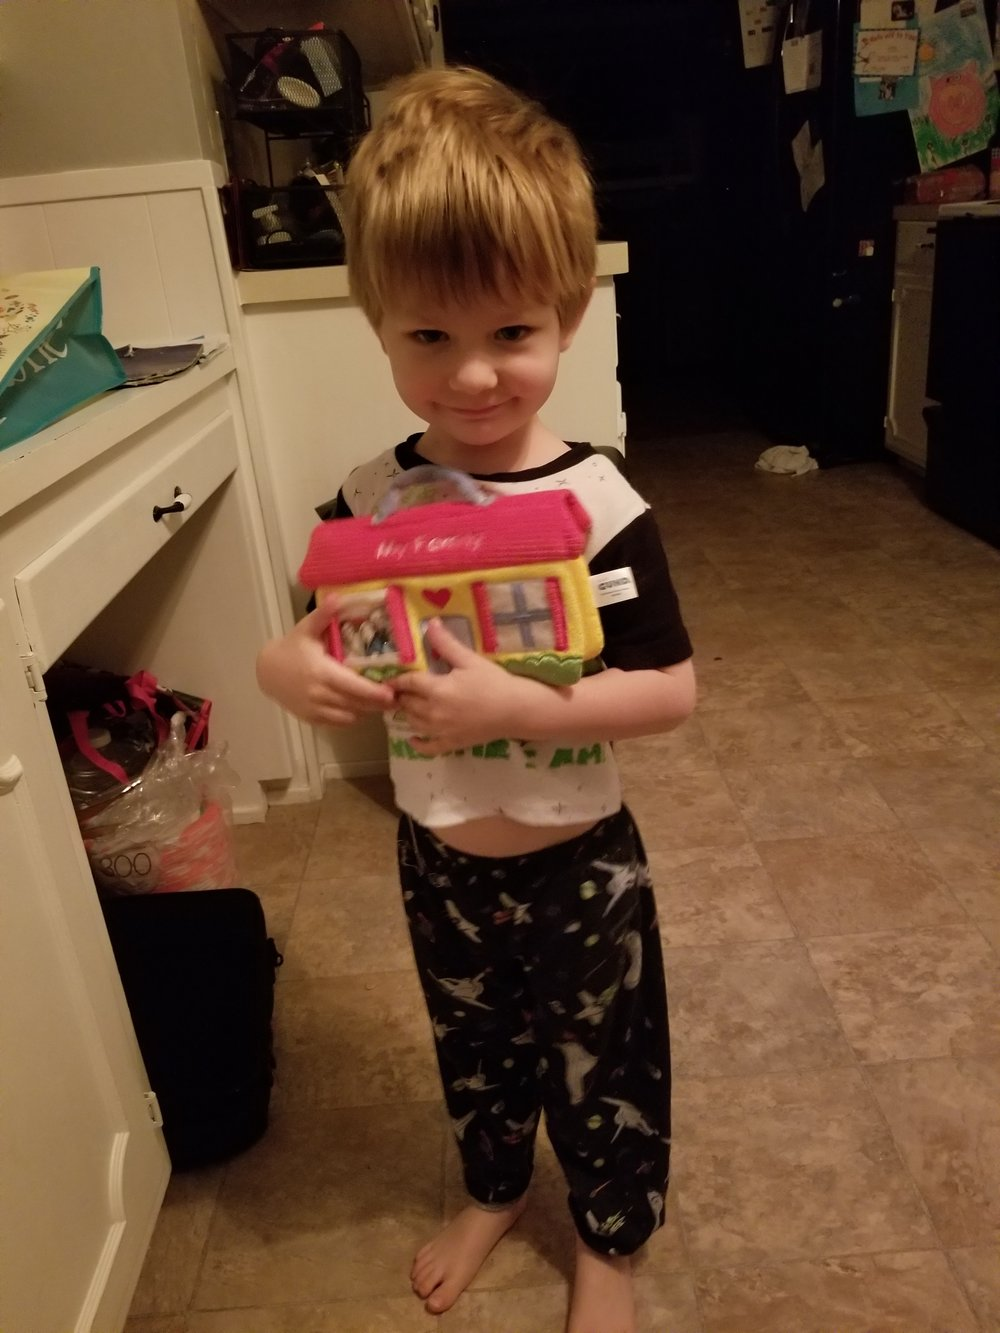 I had to add this picture! Jacob loved this photo album. I love his bedhead and too small PJs!